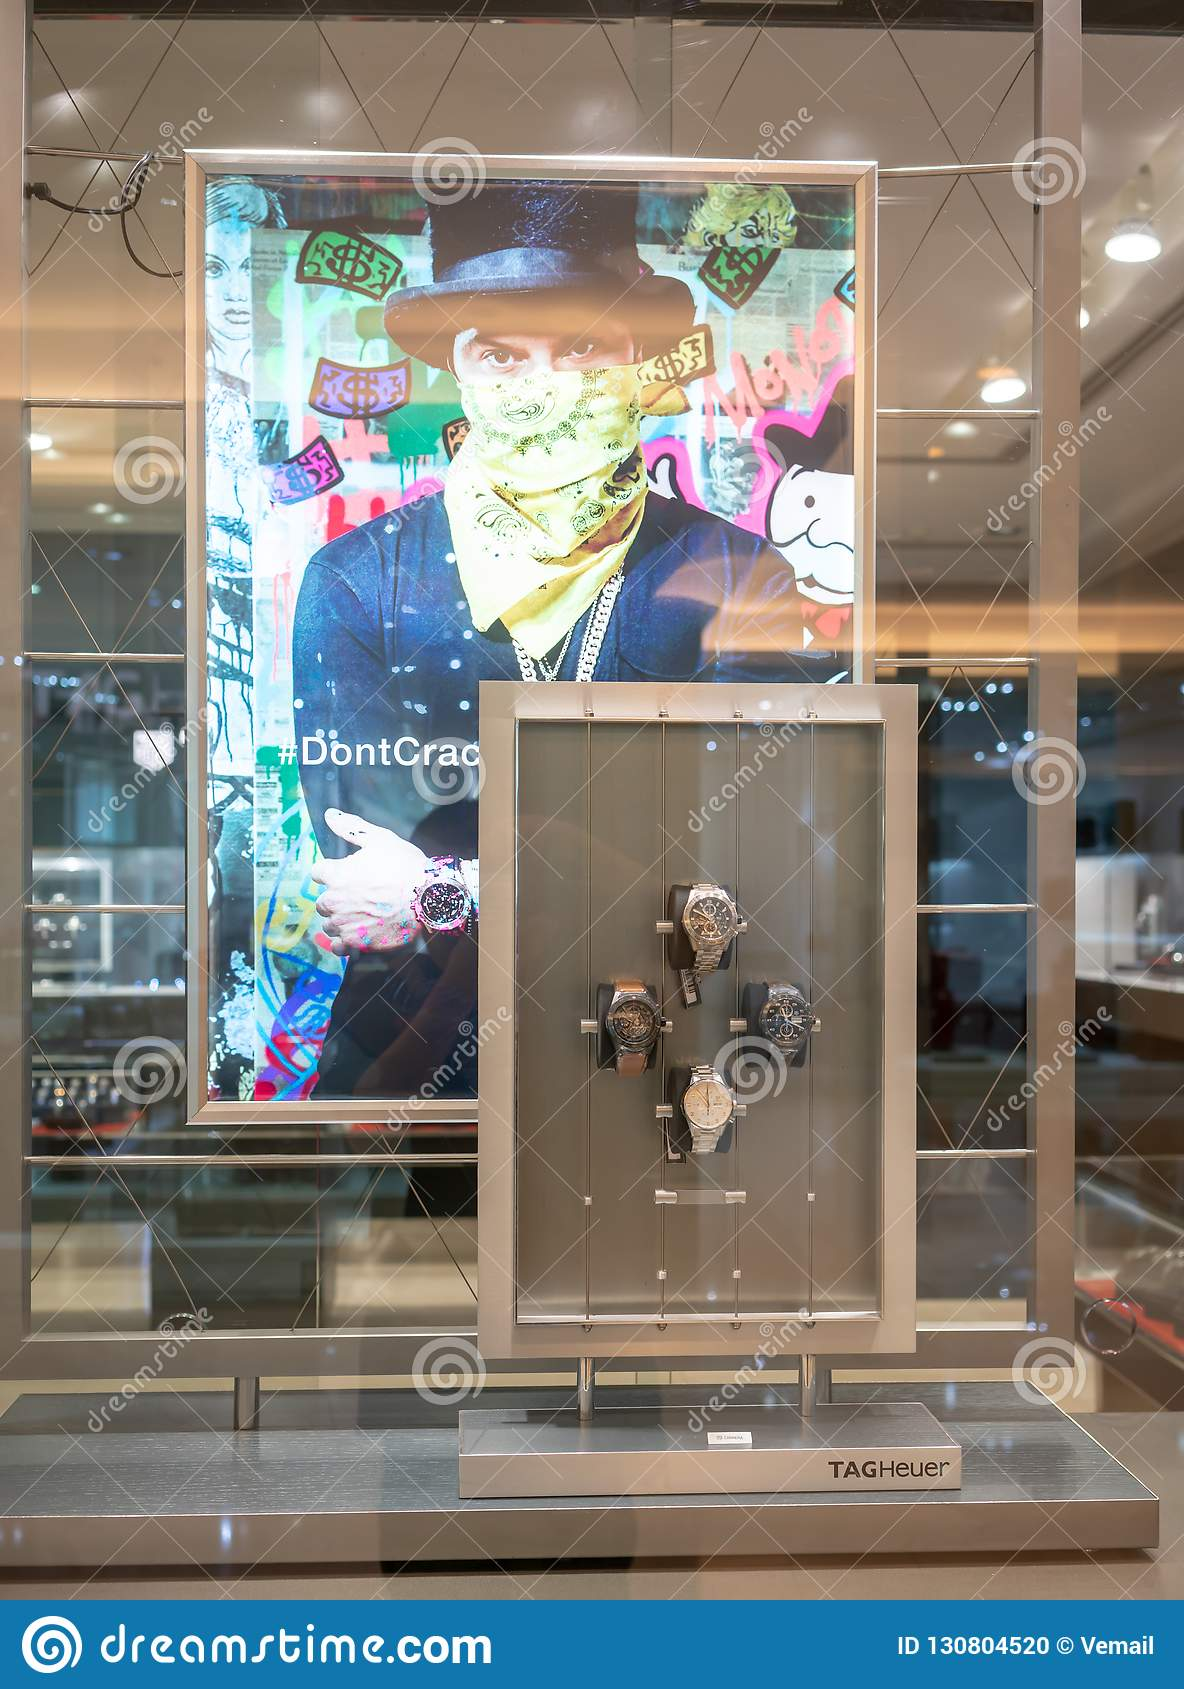 44300bee593 TAGHeuer shop at Central World, Bangkok, Thailand, Oct 19, 2018 : Luxury  Swiss Watches display at front store through window.